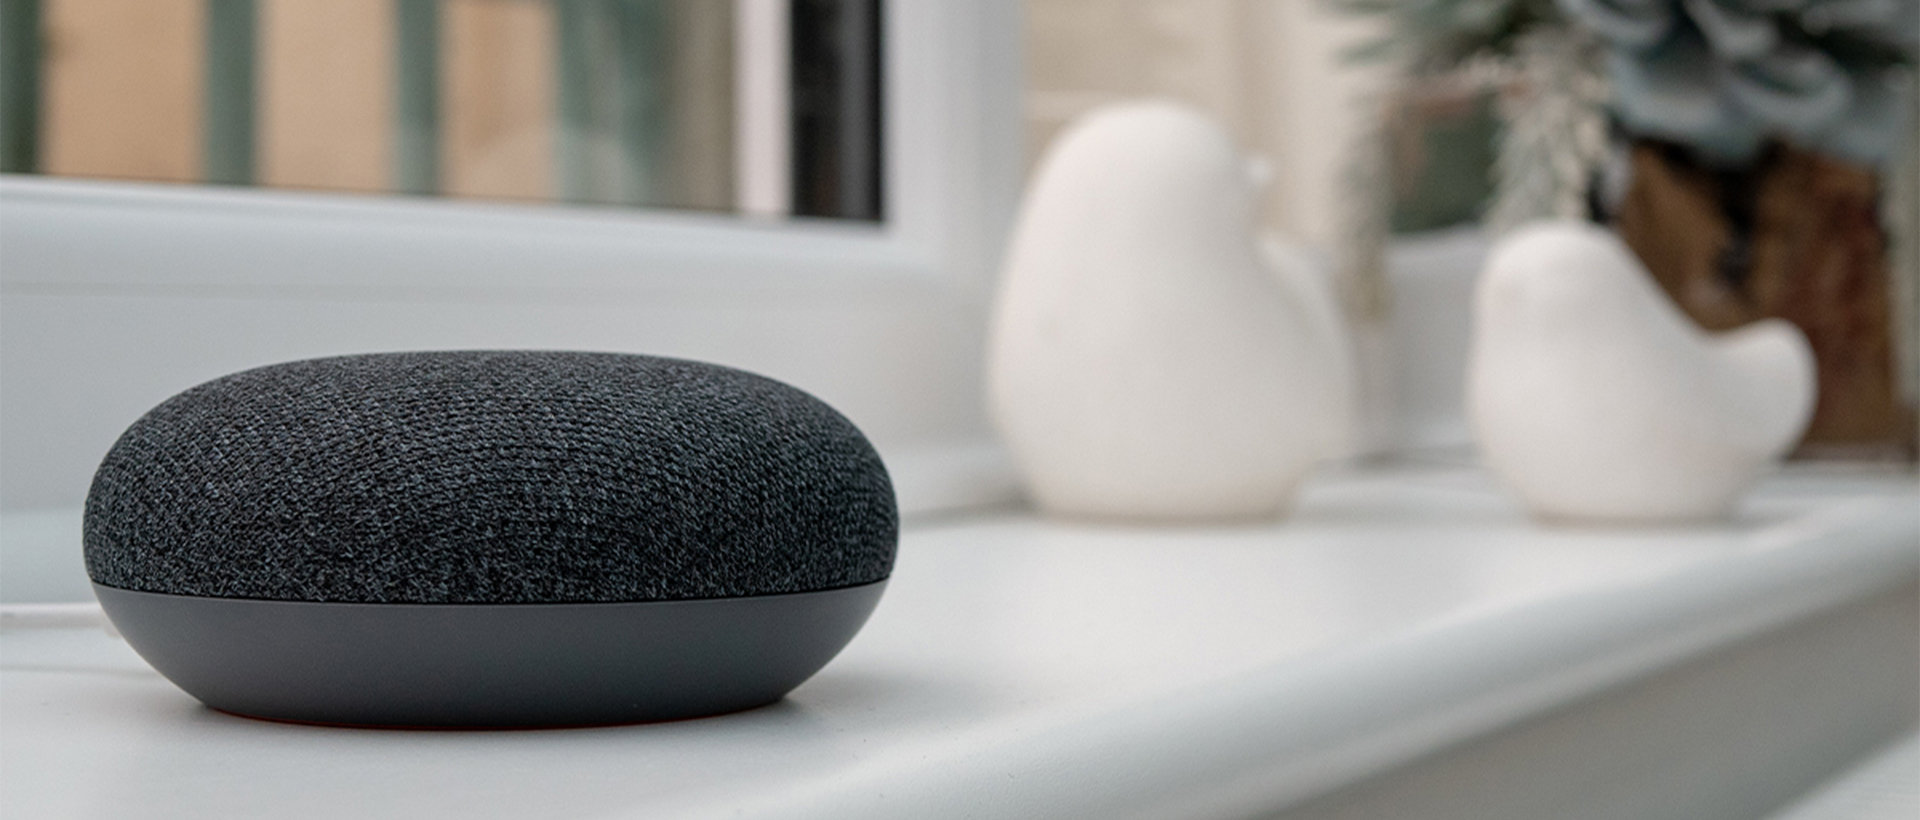 A Google Nest Mini sitting on a windowsill.